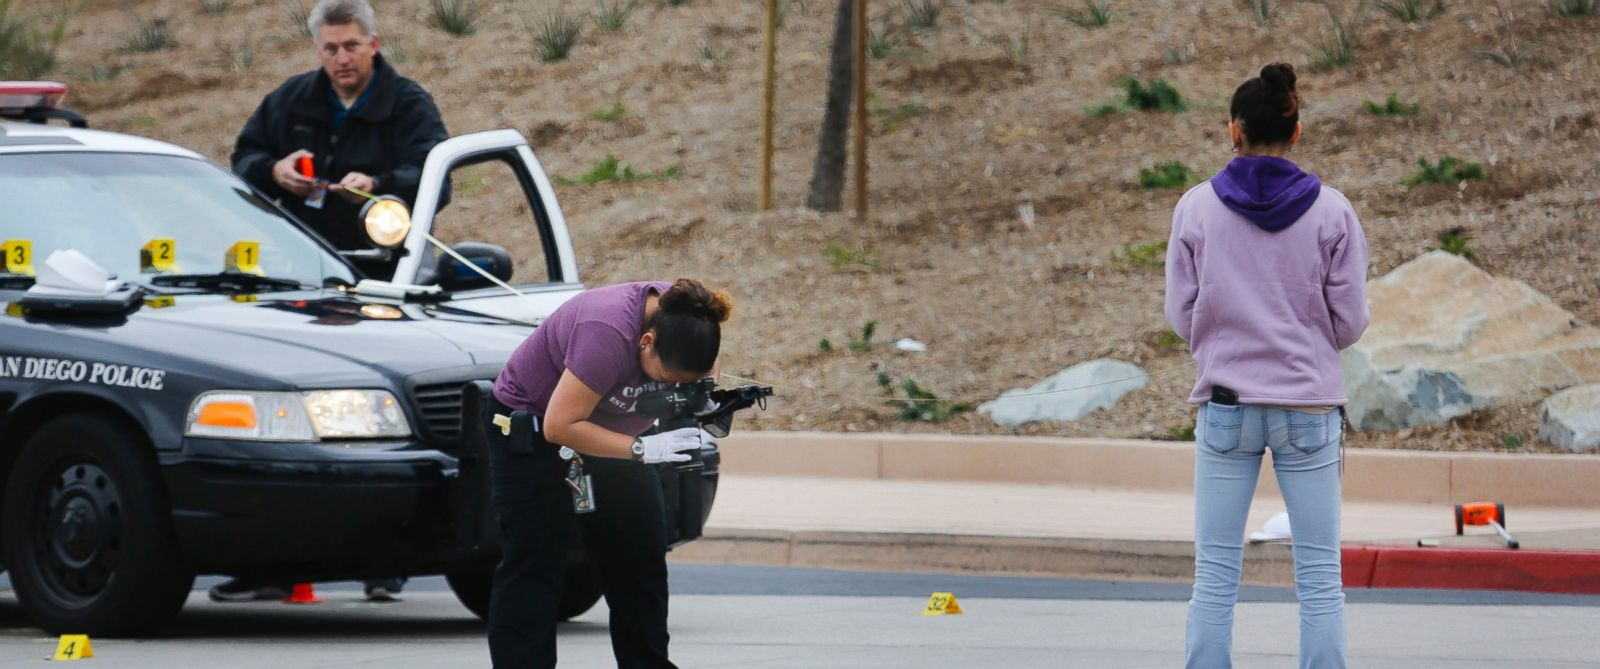 Image result for SAN DIEGO POLICE FATALLY SHOOT 15-YEAR-OLD BOY IN SCHOOL PARKING LOT